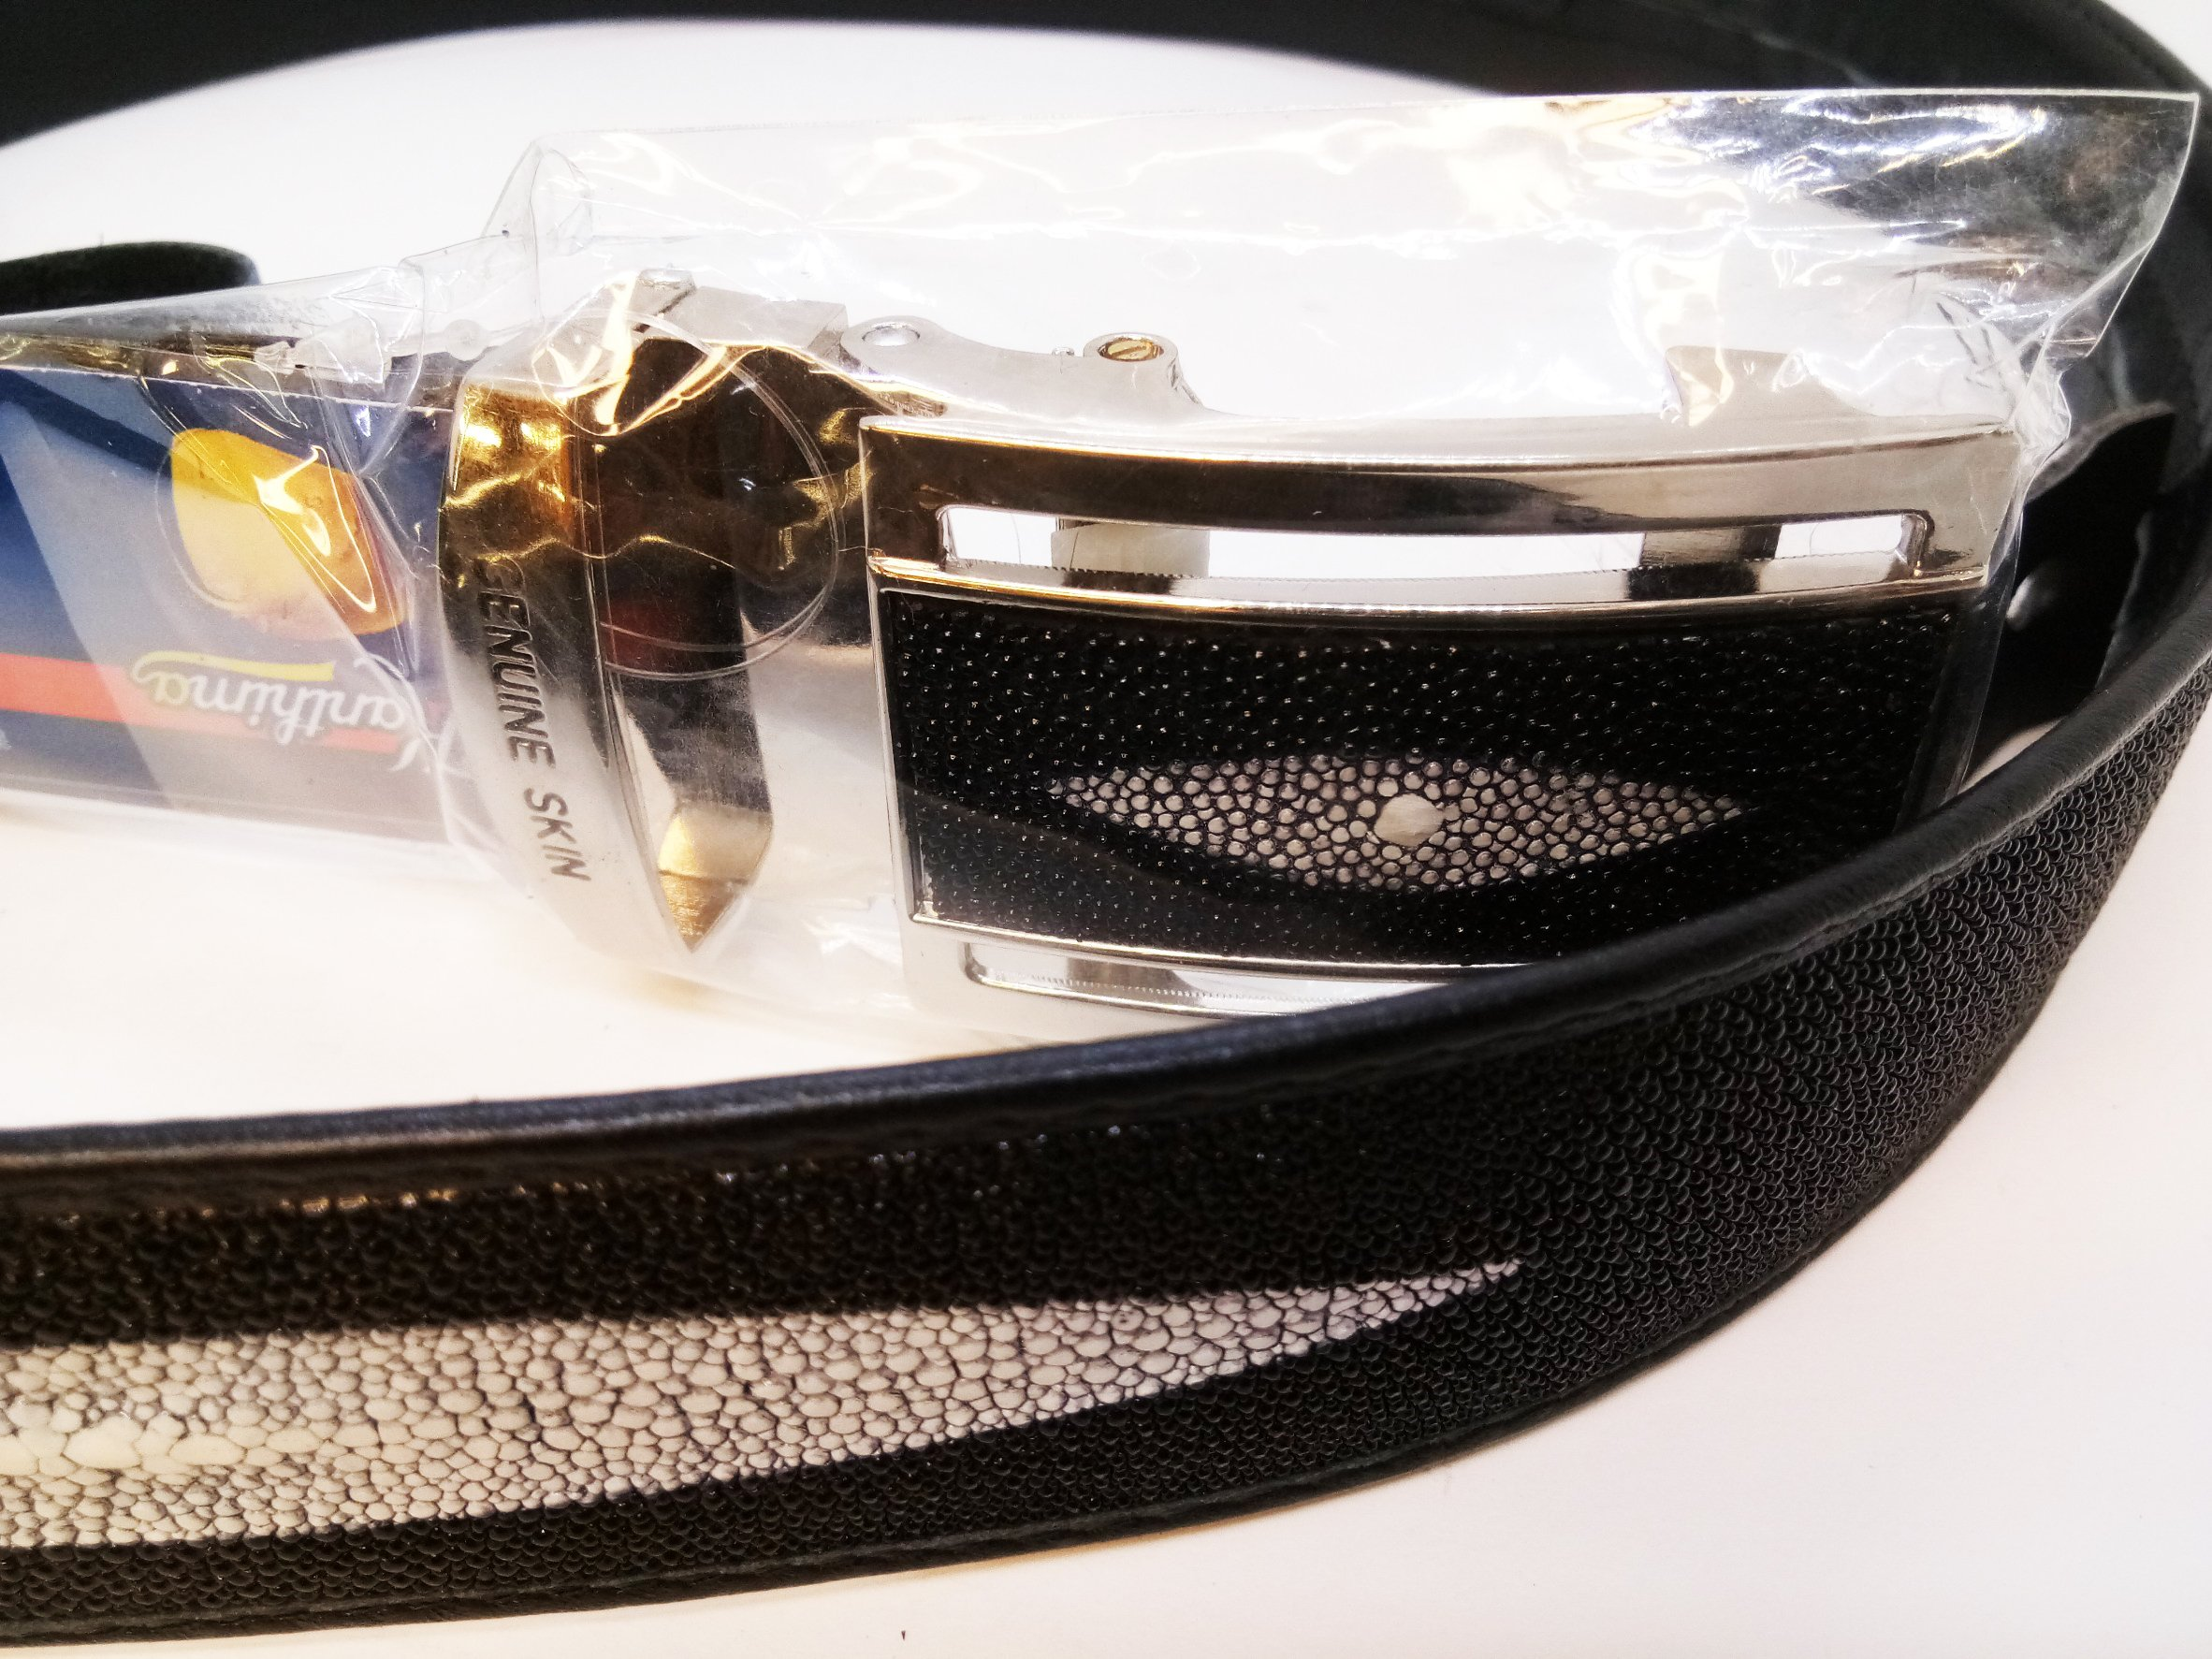 Belt Smart Lock Design C Real Stingray Shagreen Skin Leather Have Secret Channel